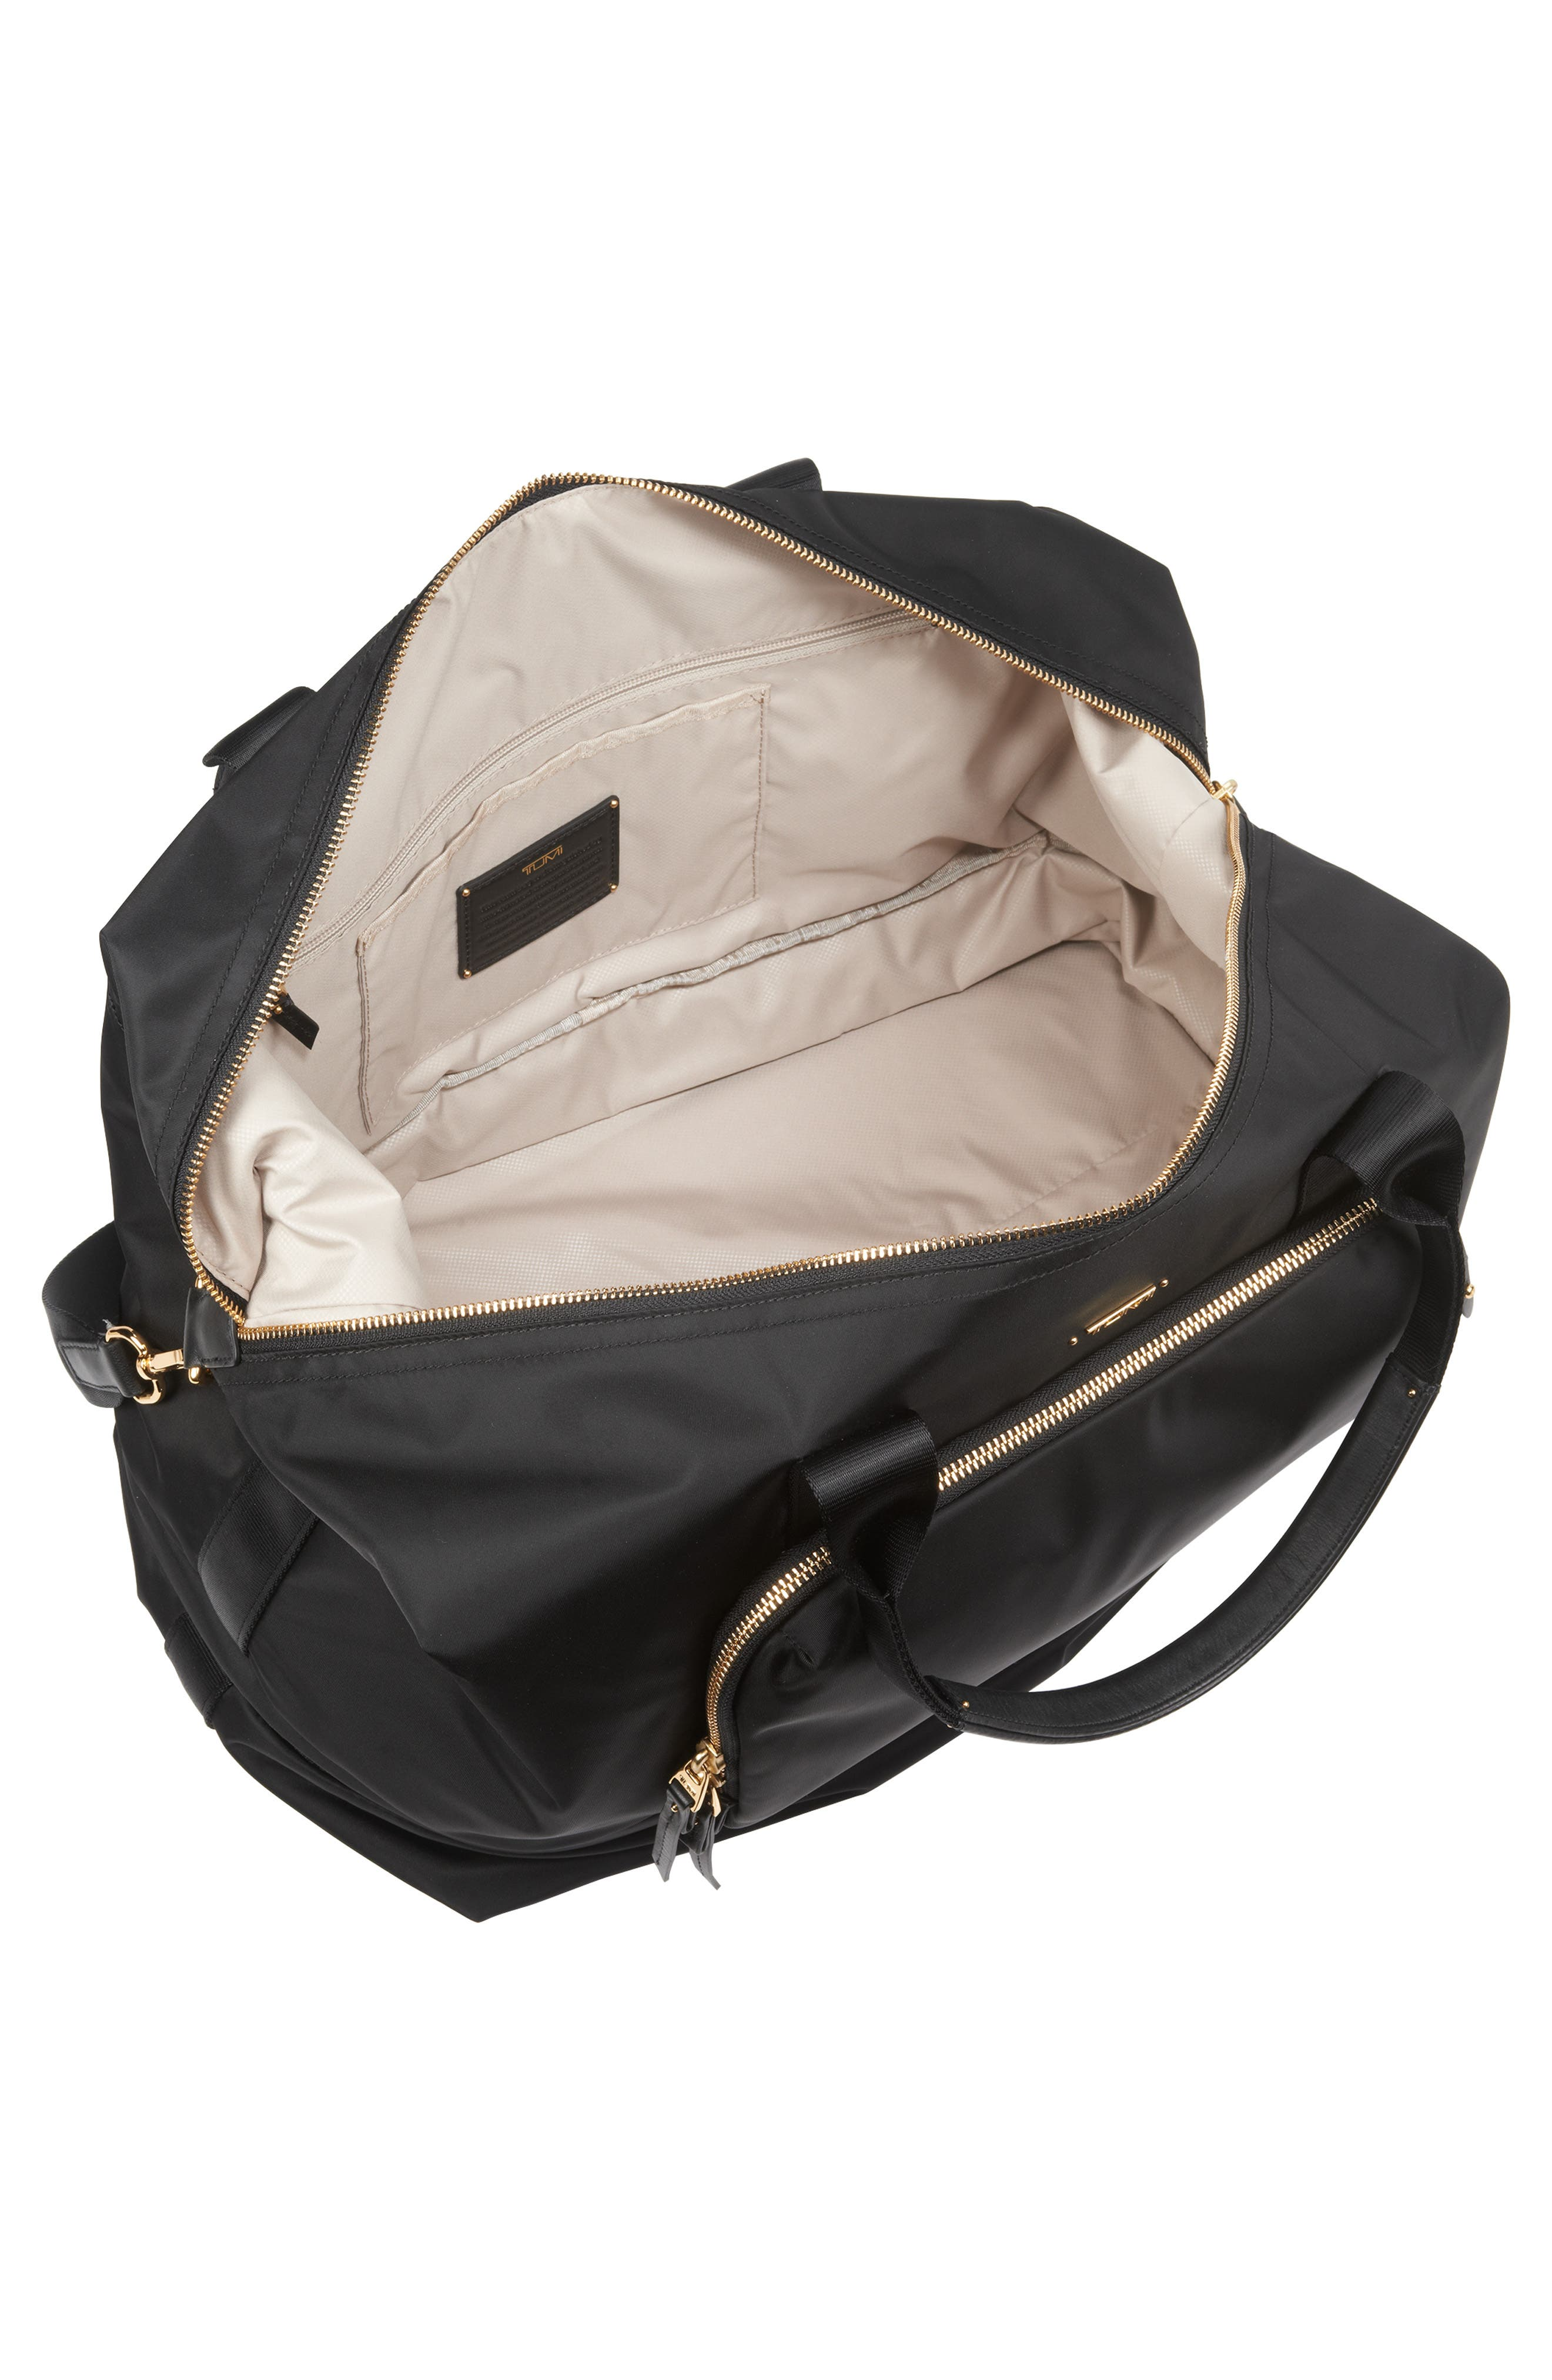 Durban Expandable Duffel Bag,                             Alternate thumbnail 2, color,                             001